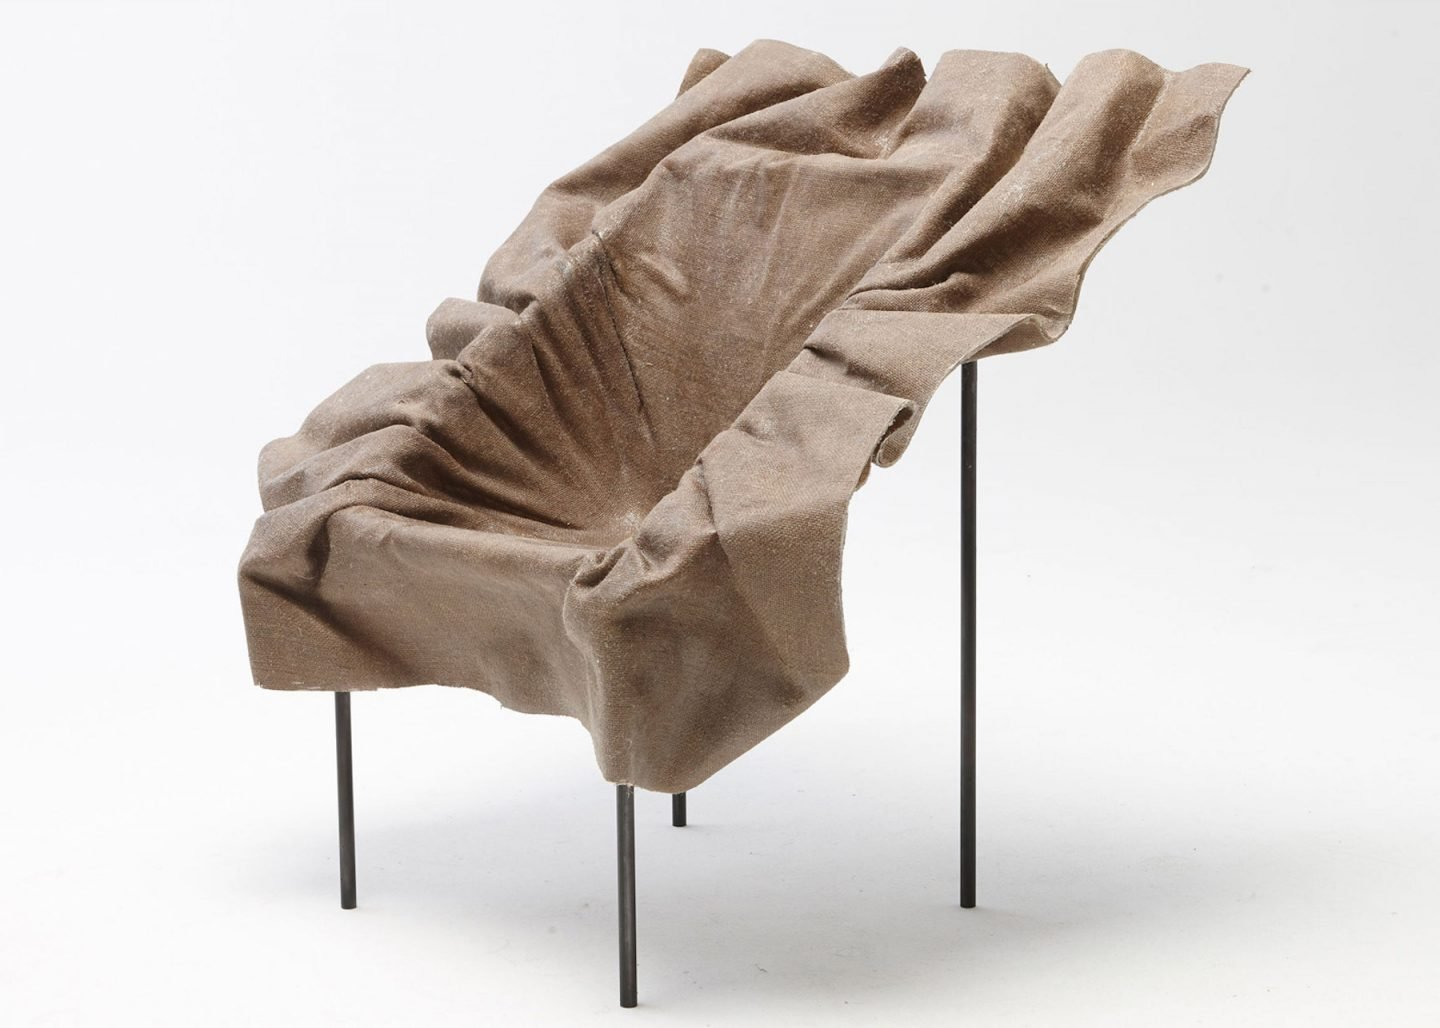 iGNANT-Design-Demeter-Fogarasi-Poetic-Furniture-Frozen-Textiles-03